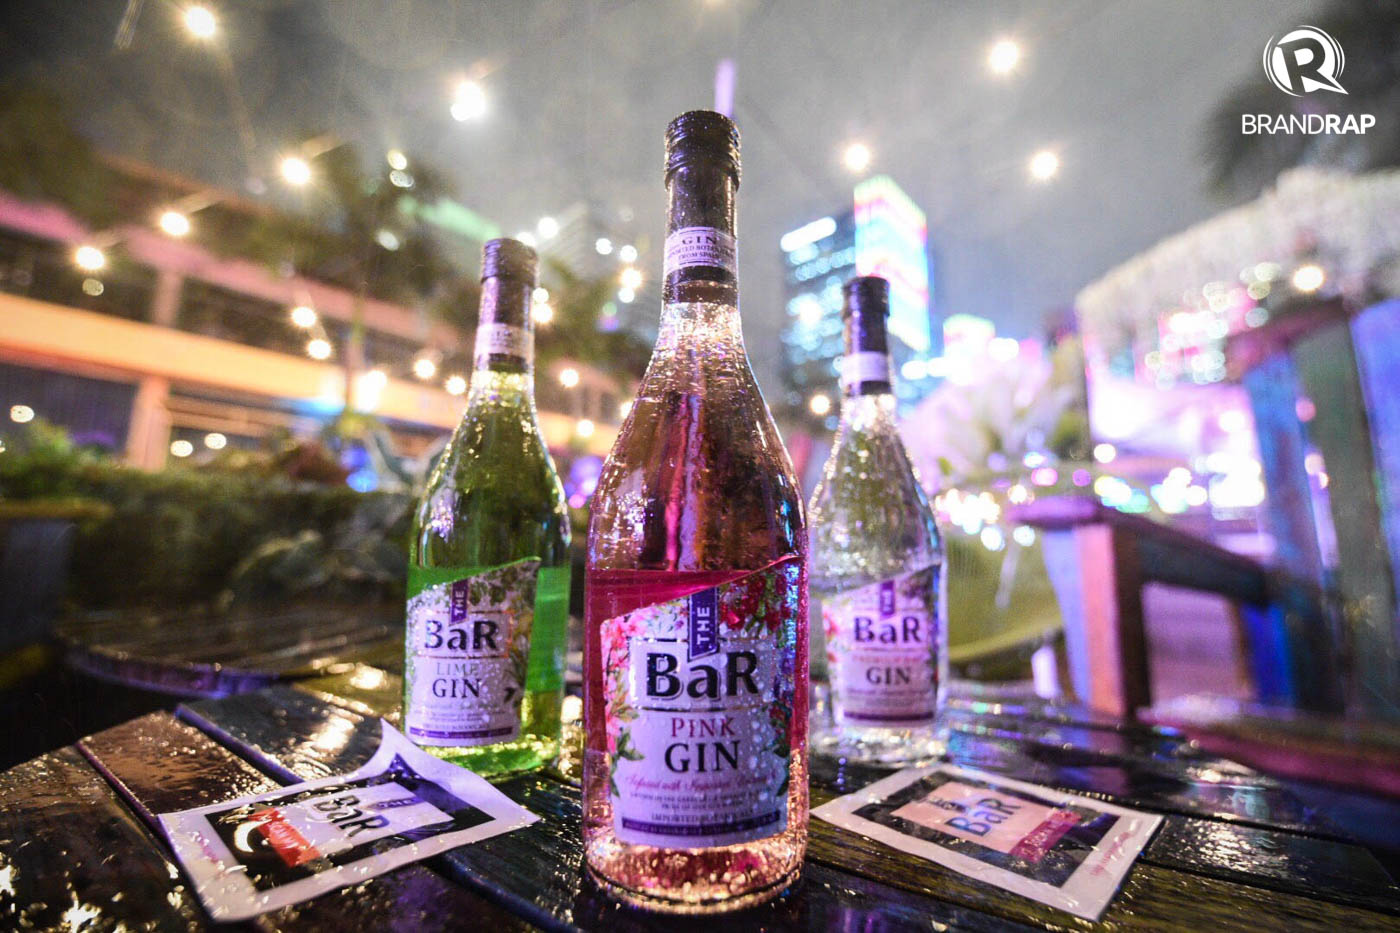 Emperador launches 3 new The Bar variants for the new